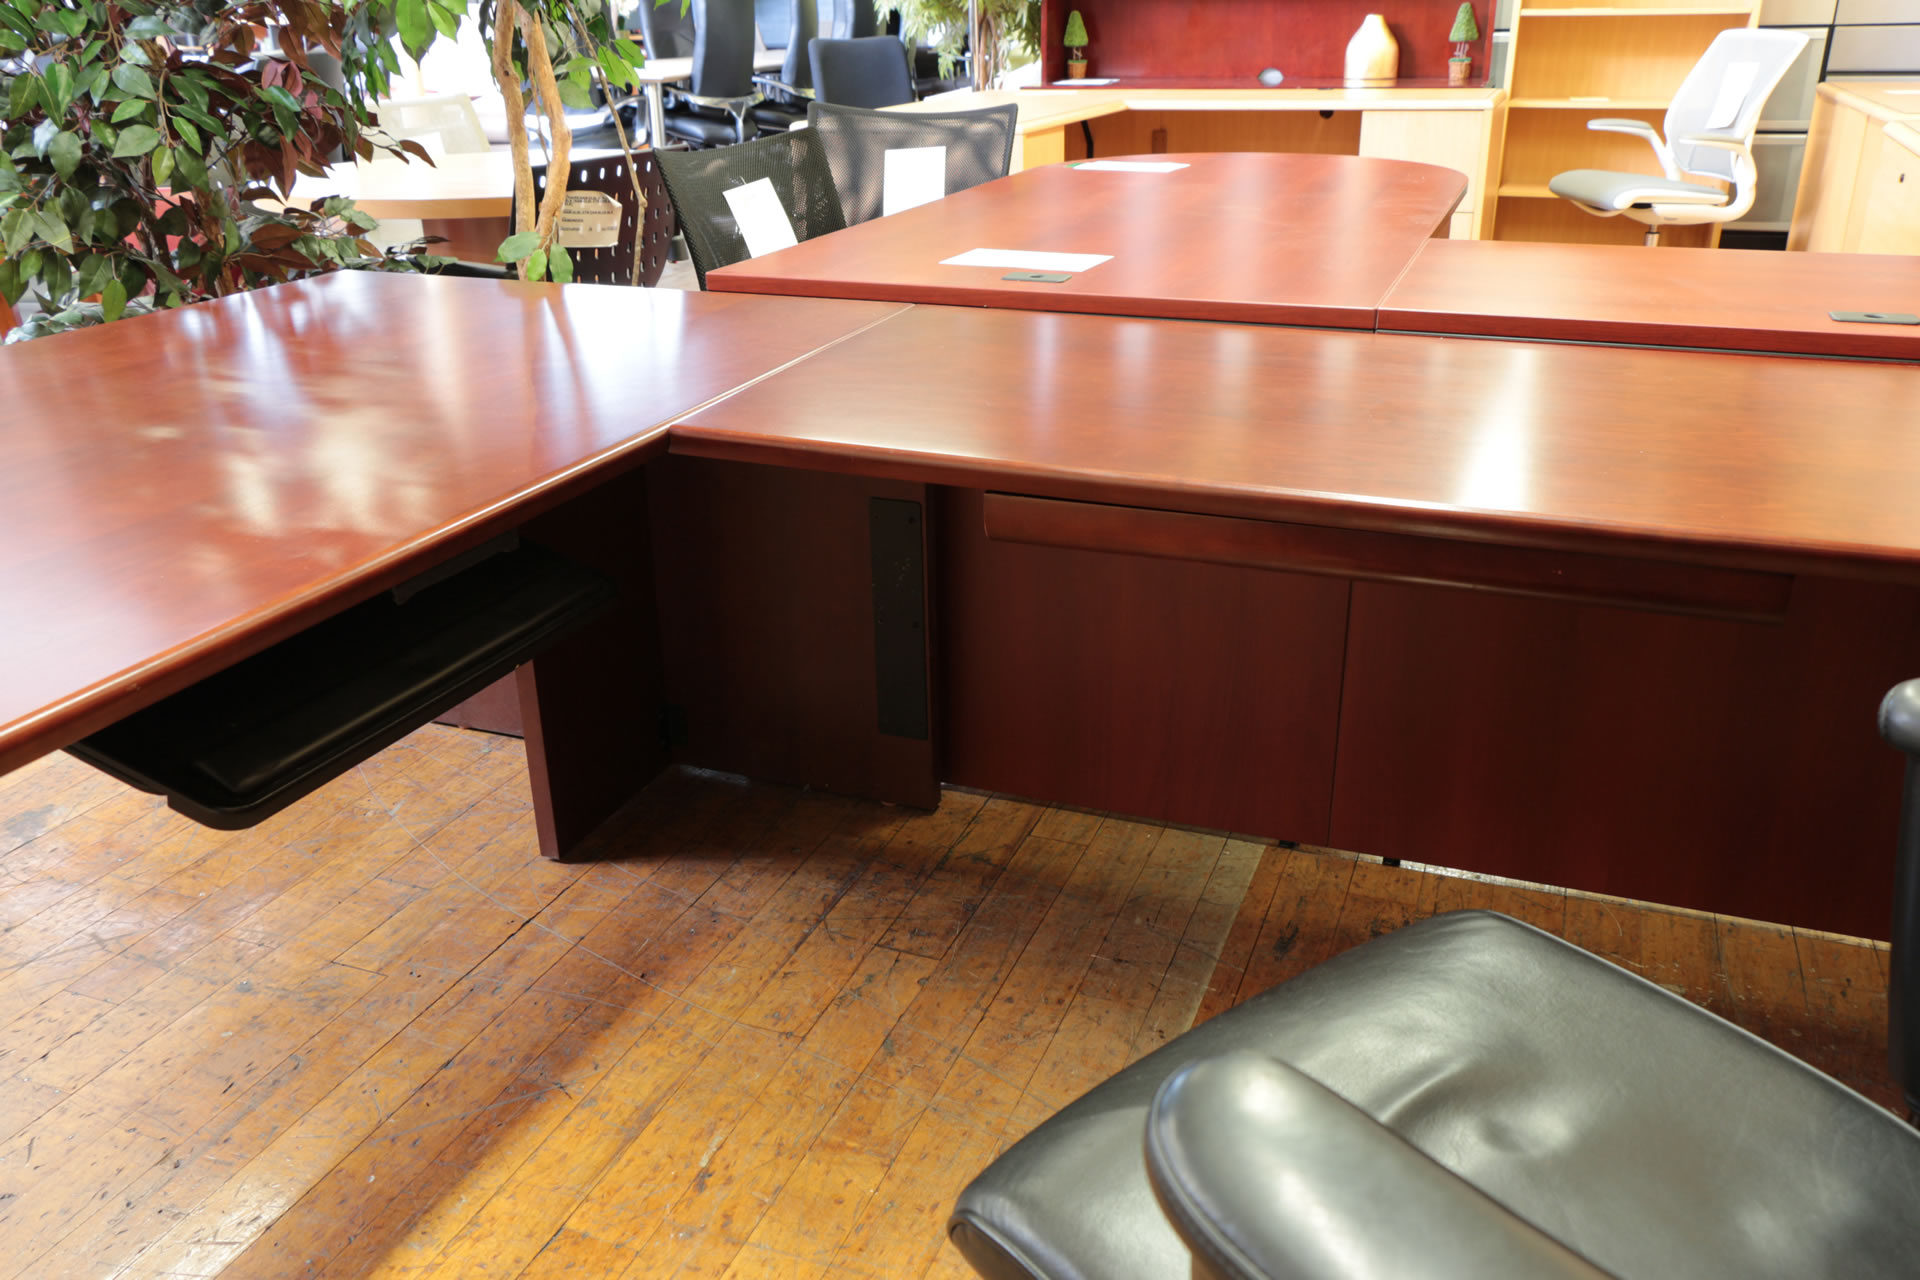 peartreeofficefurniture_peartreeofficefurniture_peartreeofficefurniture_img_9261.jpg